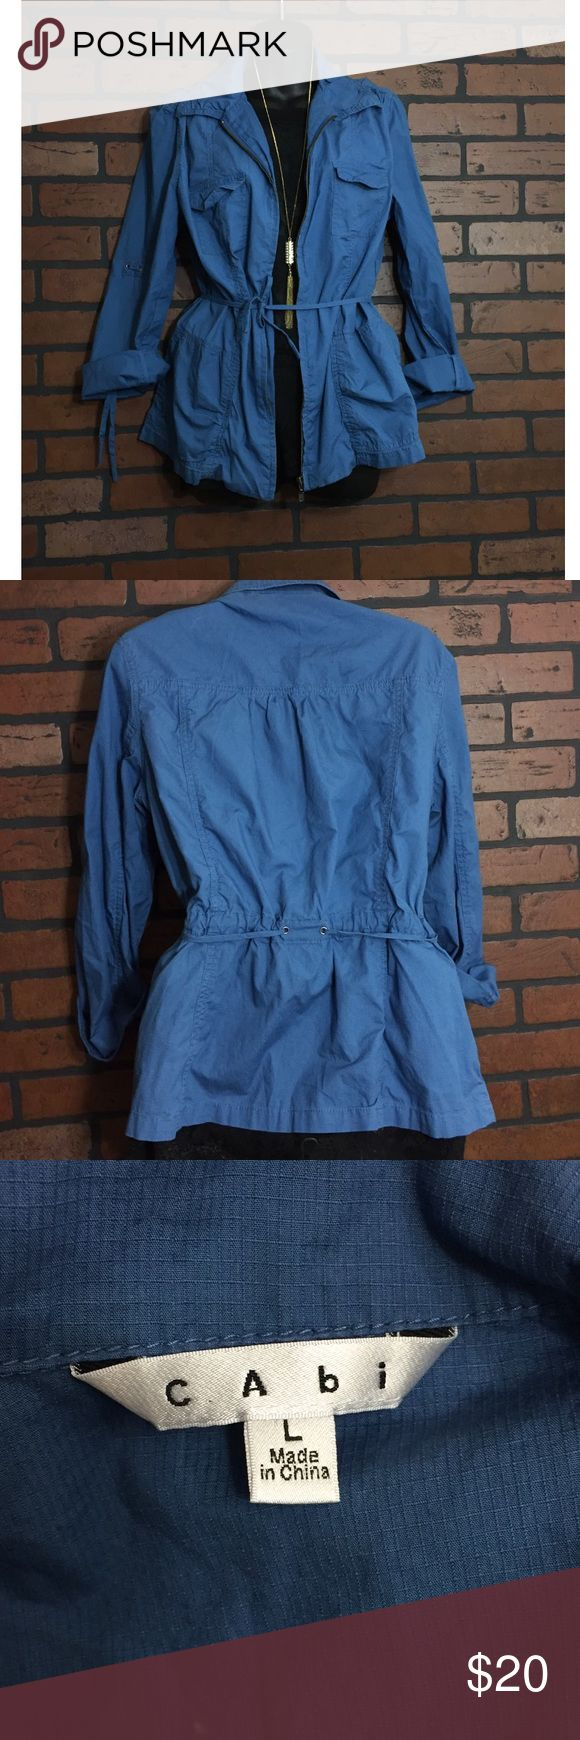 Cabi Blue Zip Up Jacket Cabi size large. Blue zip up with tie around waist. Can also pin up sleeves. Great condition CAbi Jackets & Coats Utility Jackets